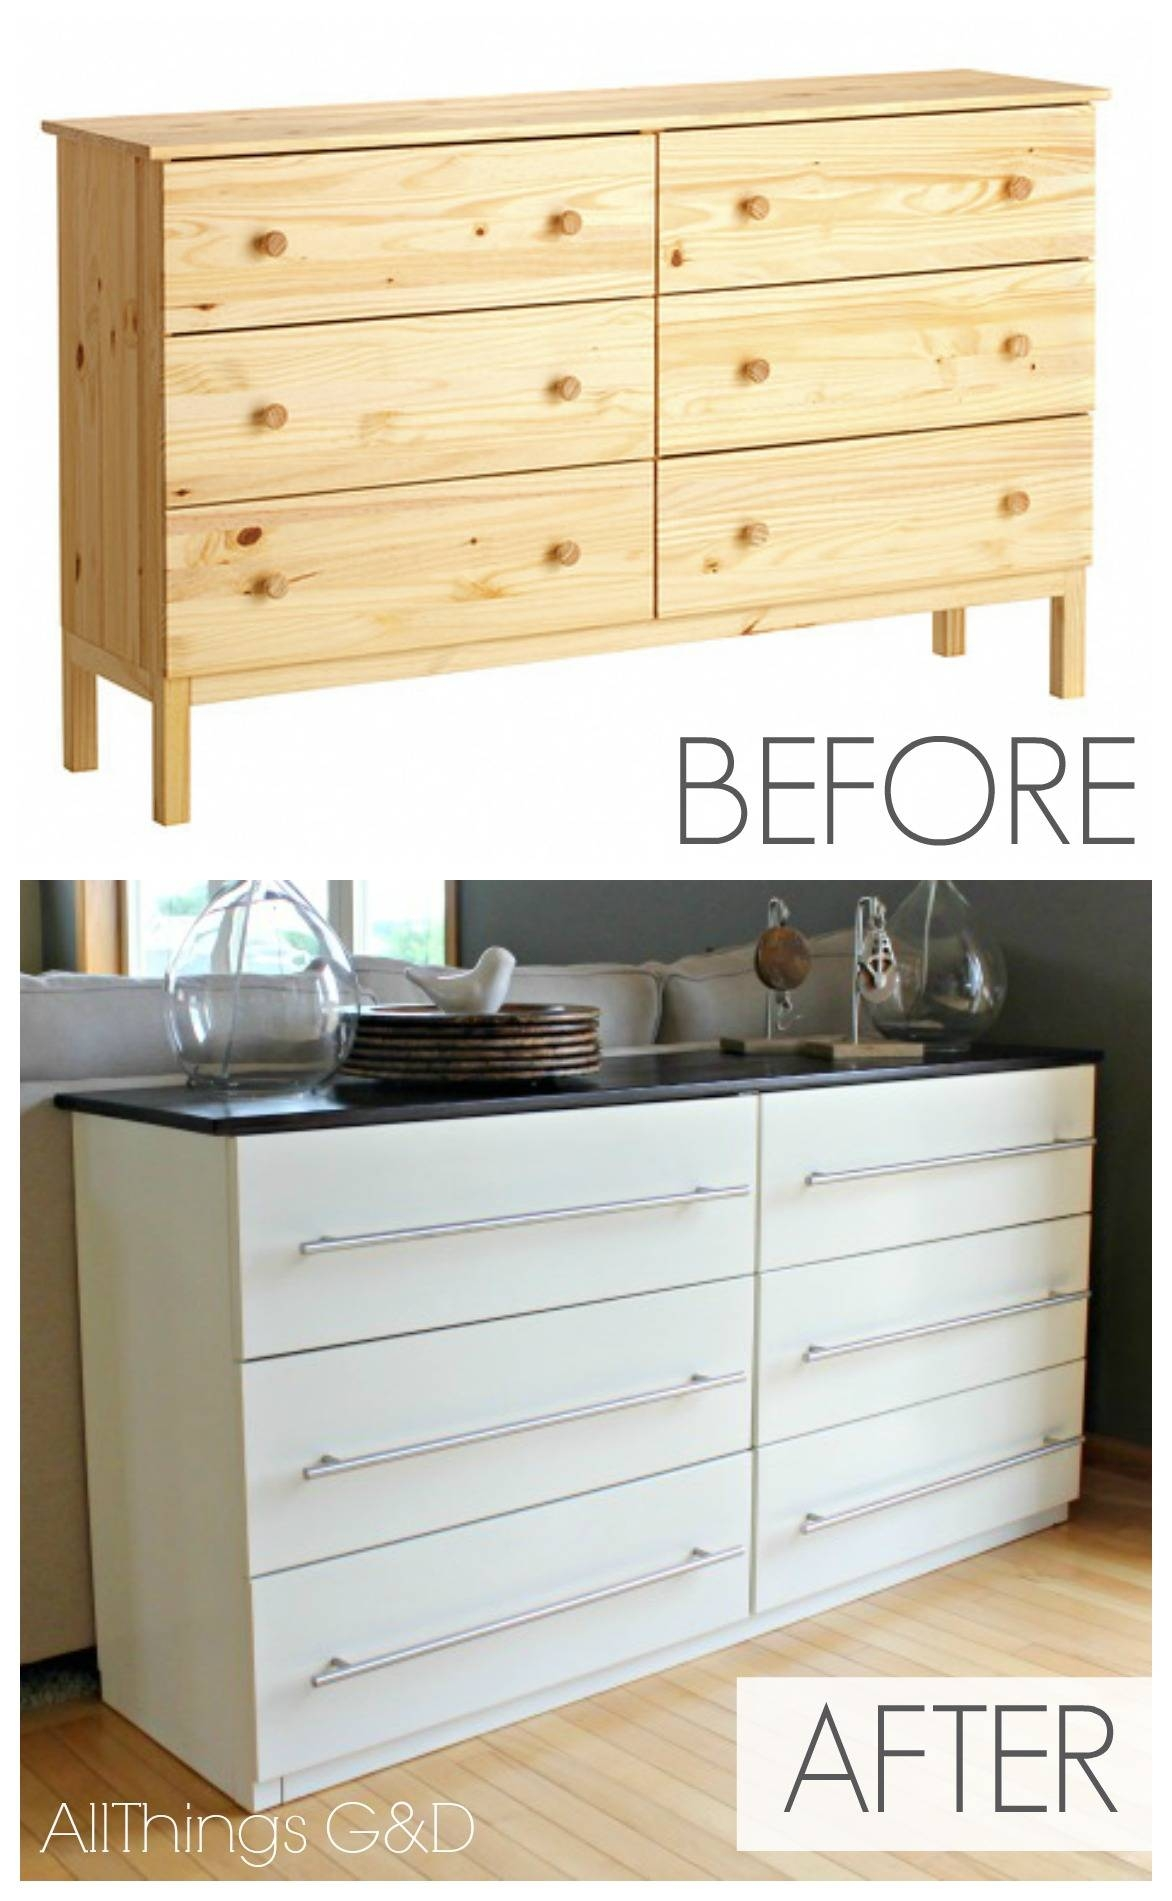 15 Ideas of Kitchen Dressers and Sideboards